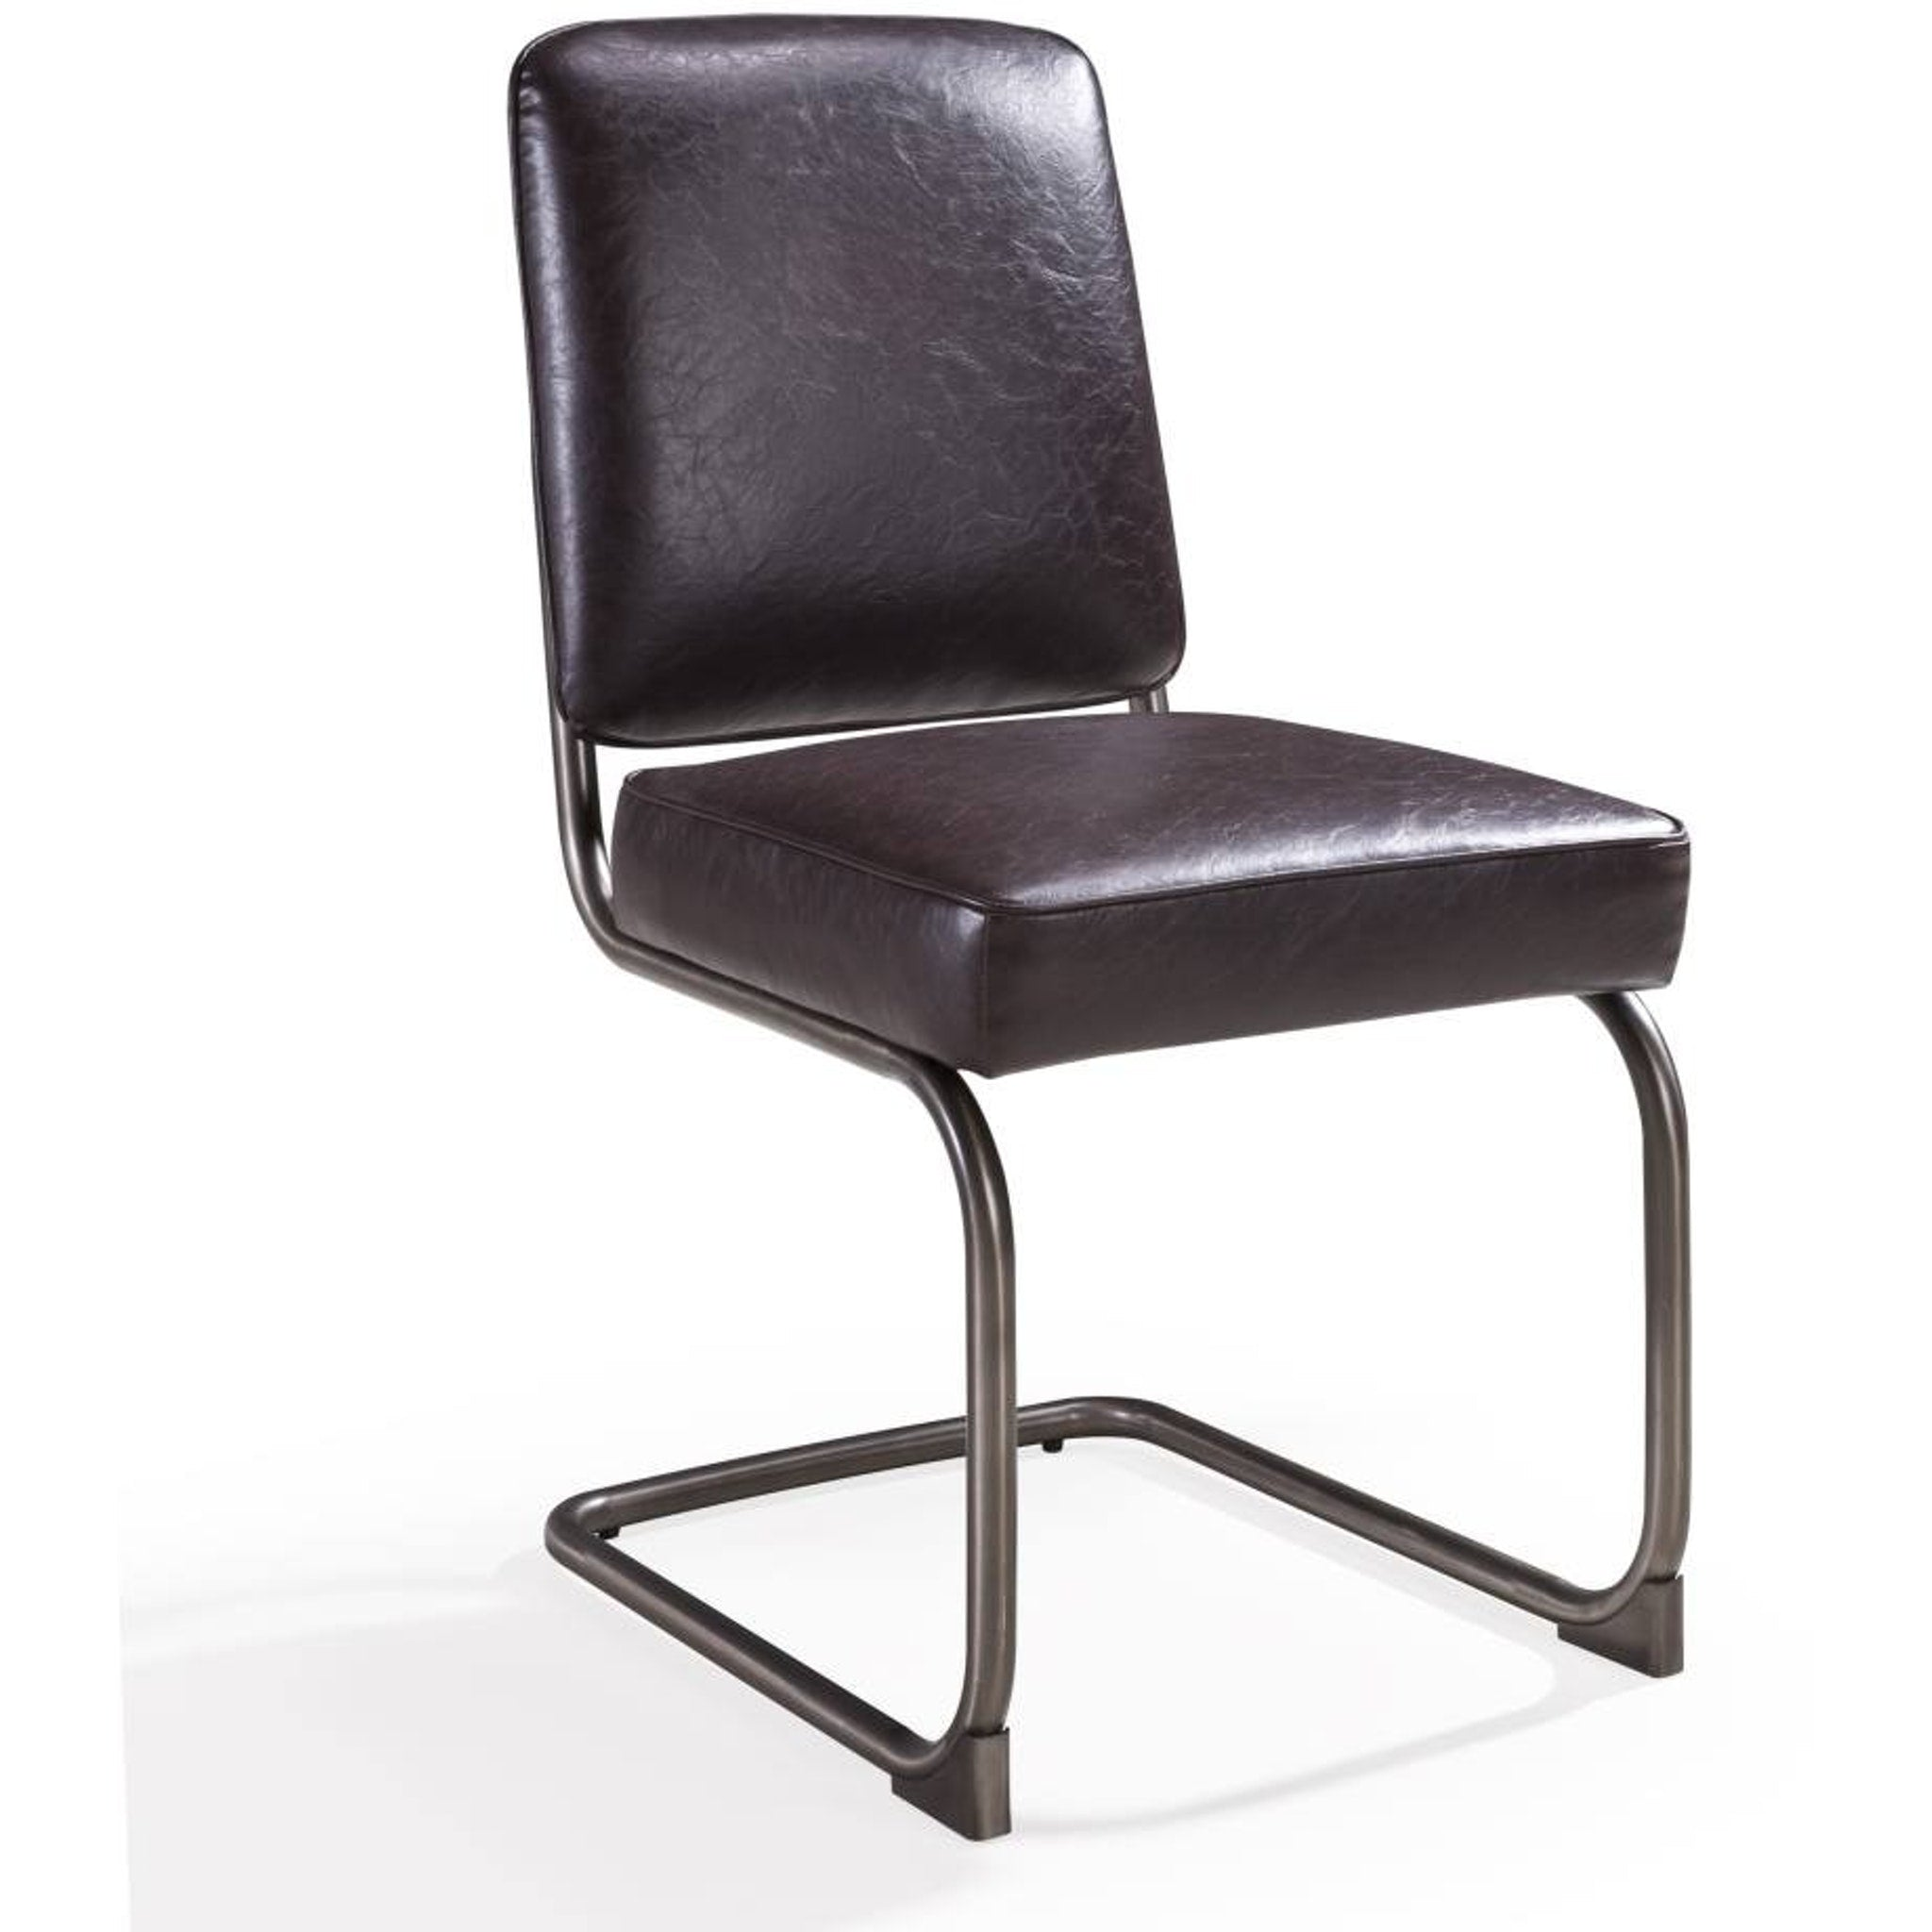 State Breuer-style Dining Chair in Chocolate